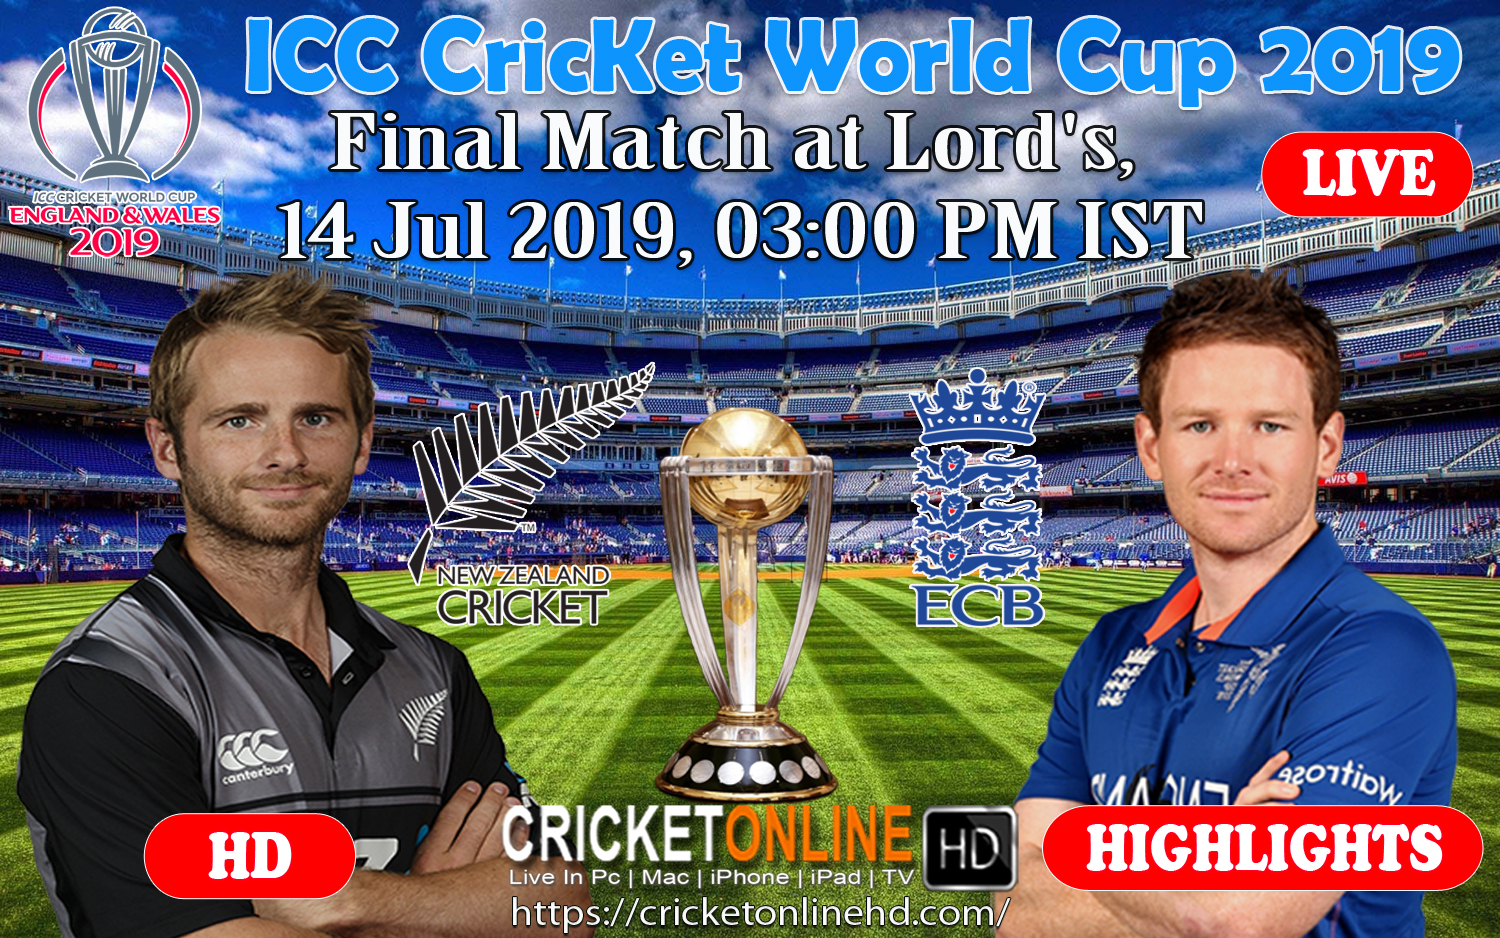 New Zealand Vs England Final Match, ICC Cricket World Cup 2019 Streaming HD At Lord's, July 14